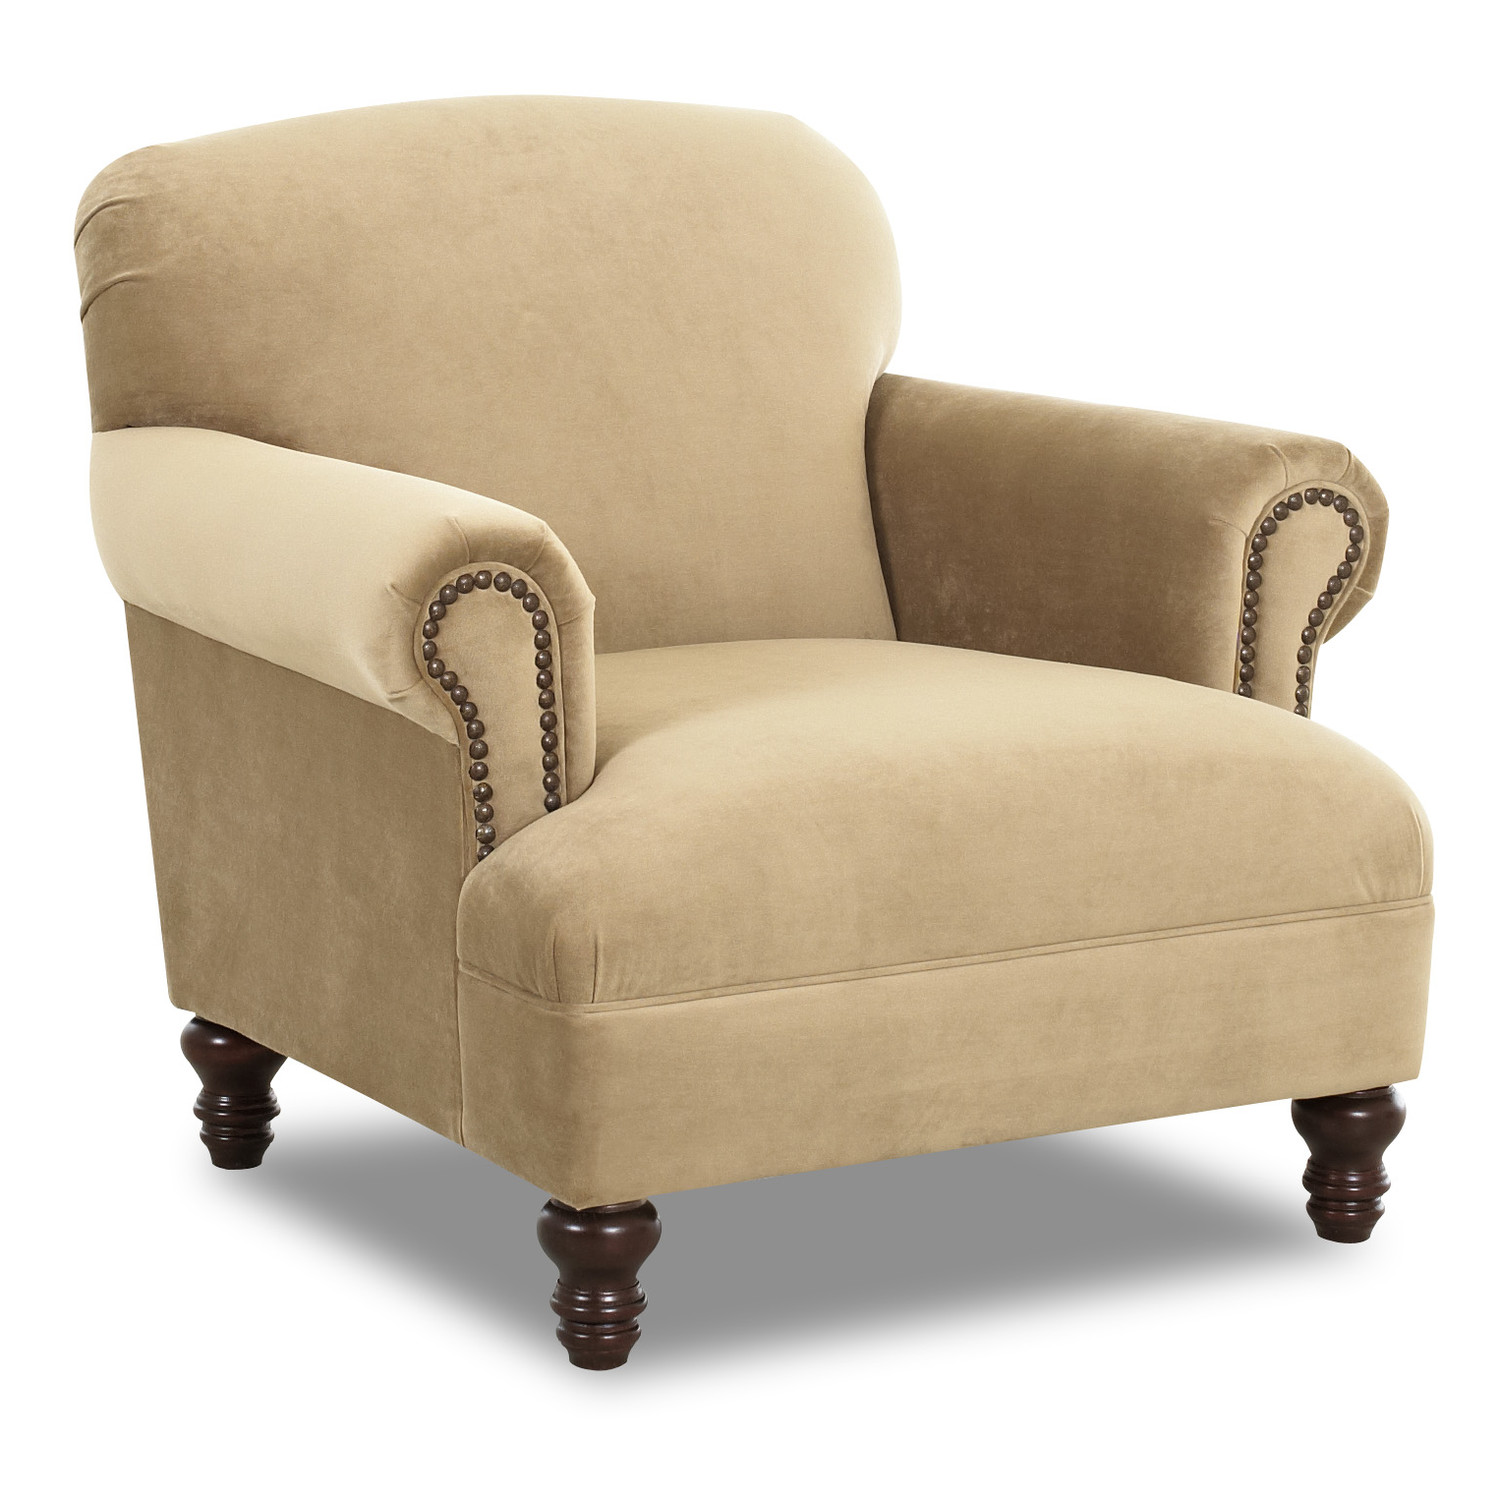 Oversized Chair and Ottoman   Chairs for Bedrooms   Occasional Chairs